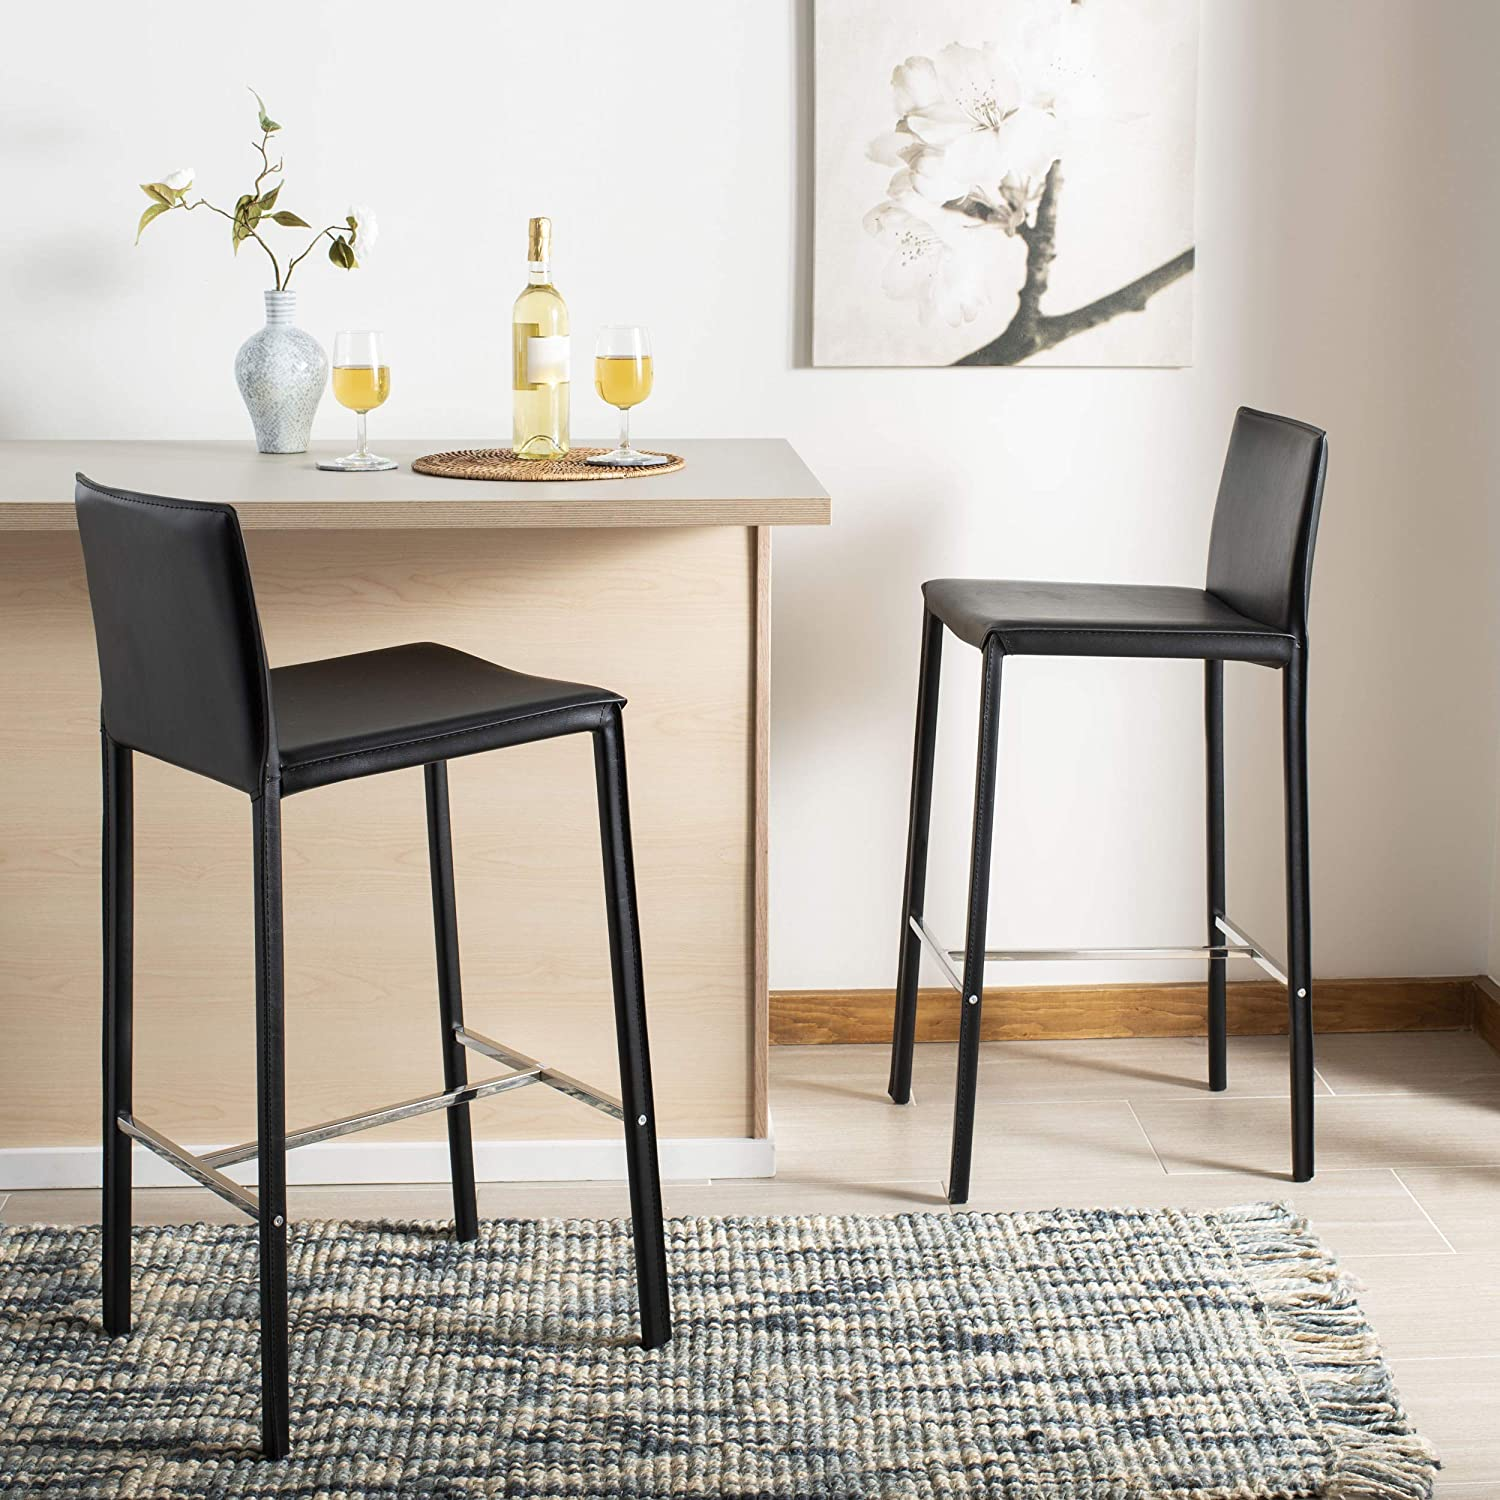 Safavieh Home Collection Jason Mid-Century Black Leather 30-inch Bar Stool Set of 2